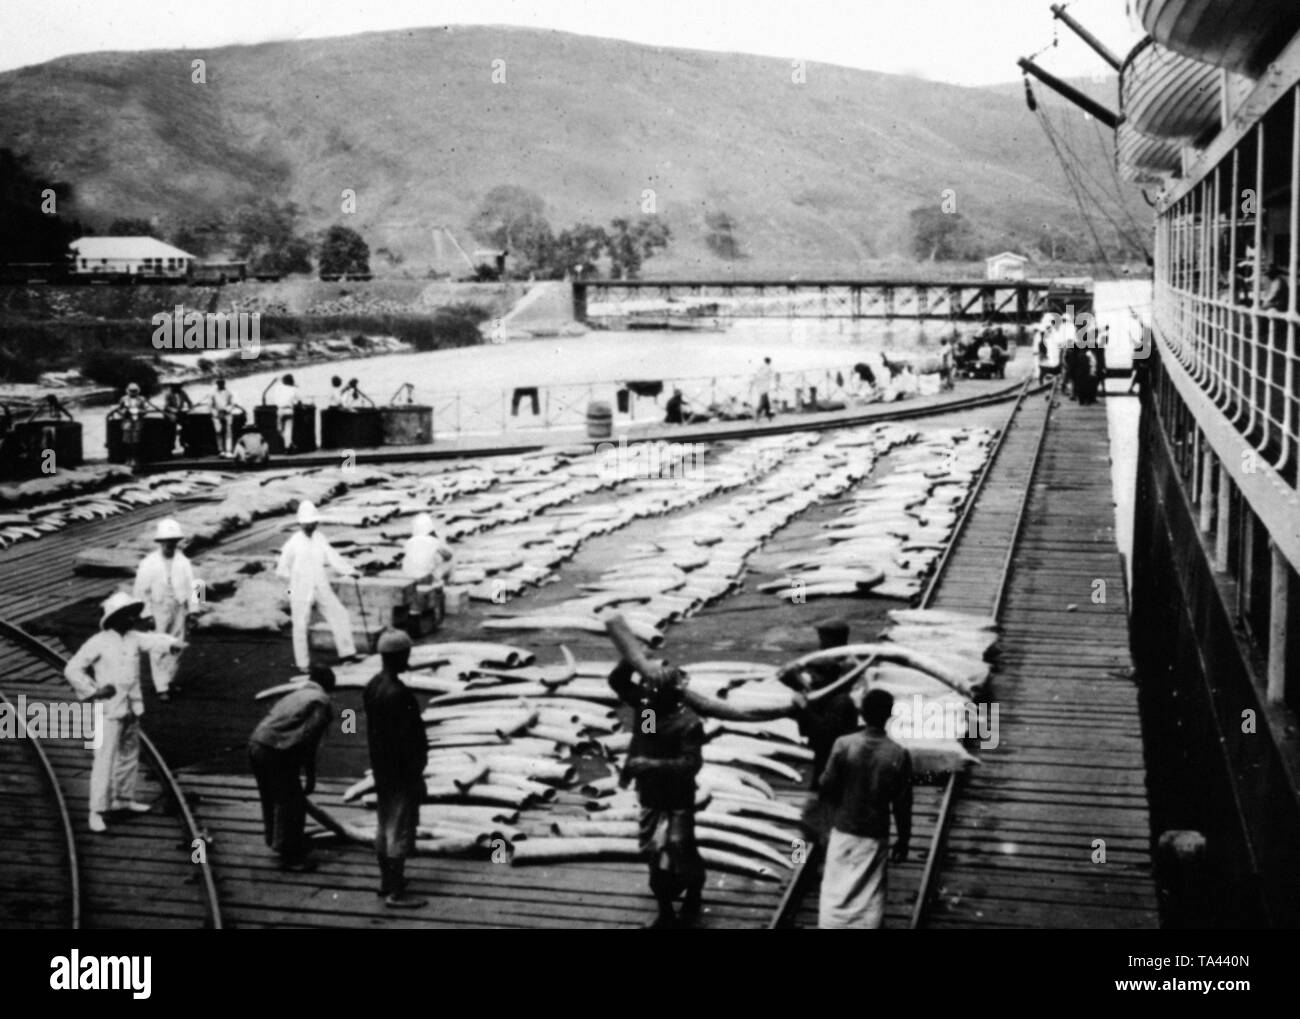 Loading of ivory in the port of Tiko. In the background, Mount Cameroon. - Stock Image